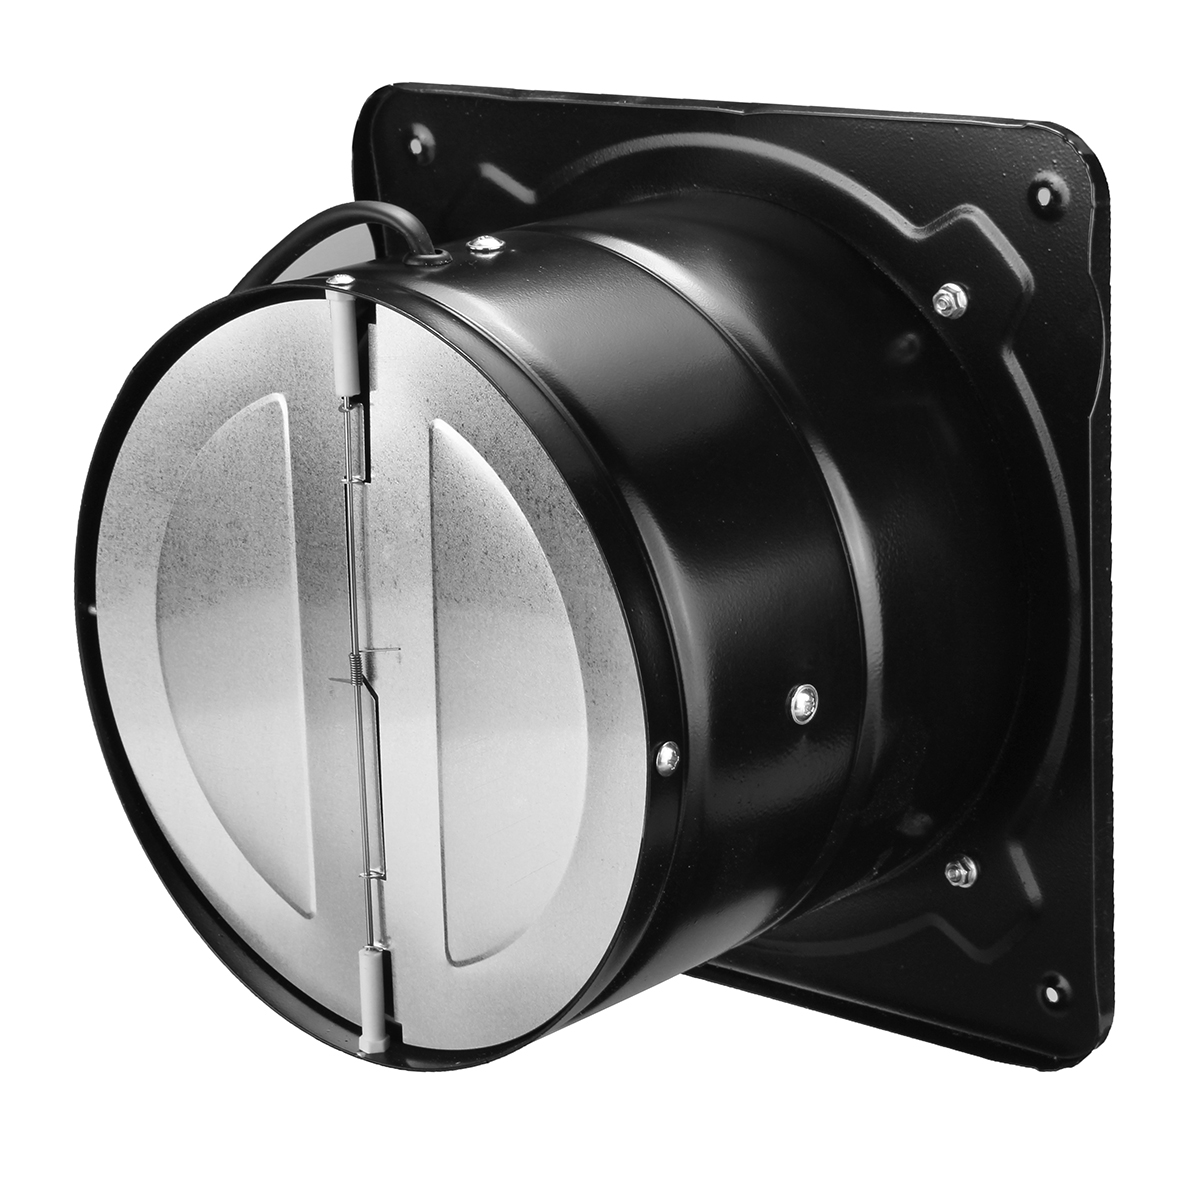 60W/80W/150W Industrial Ventilation Extractor Axial Exhaust Commercial Air Blower Fan